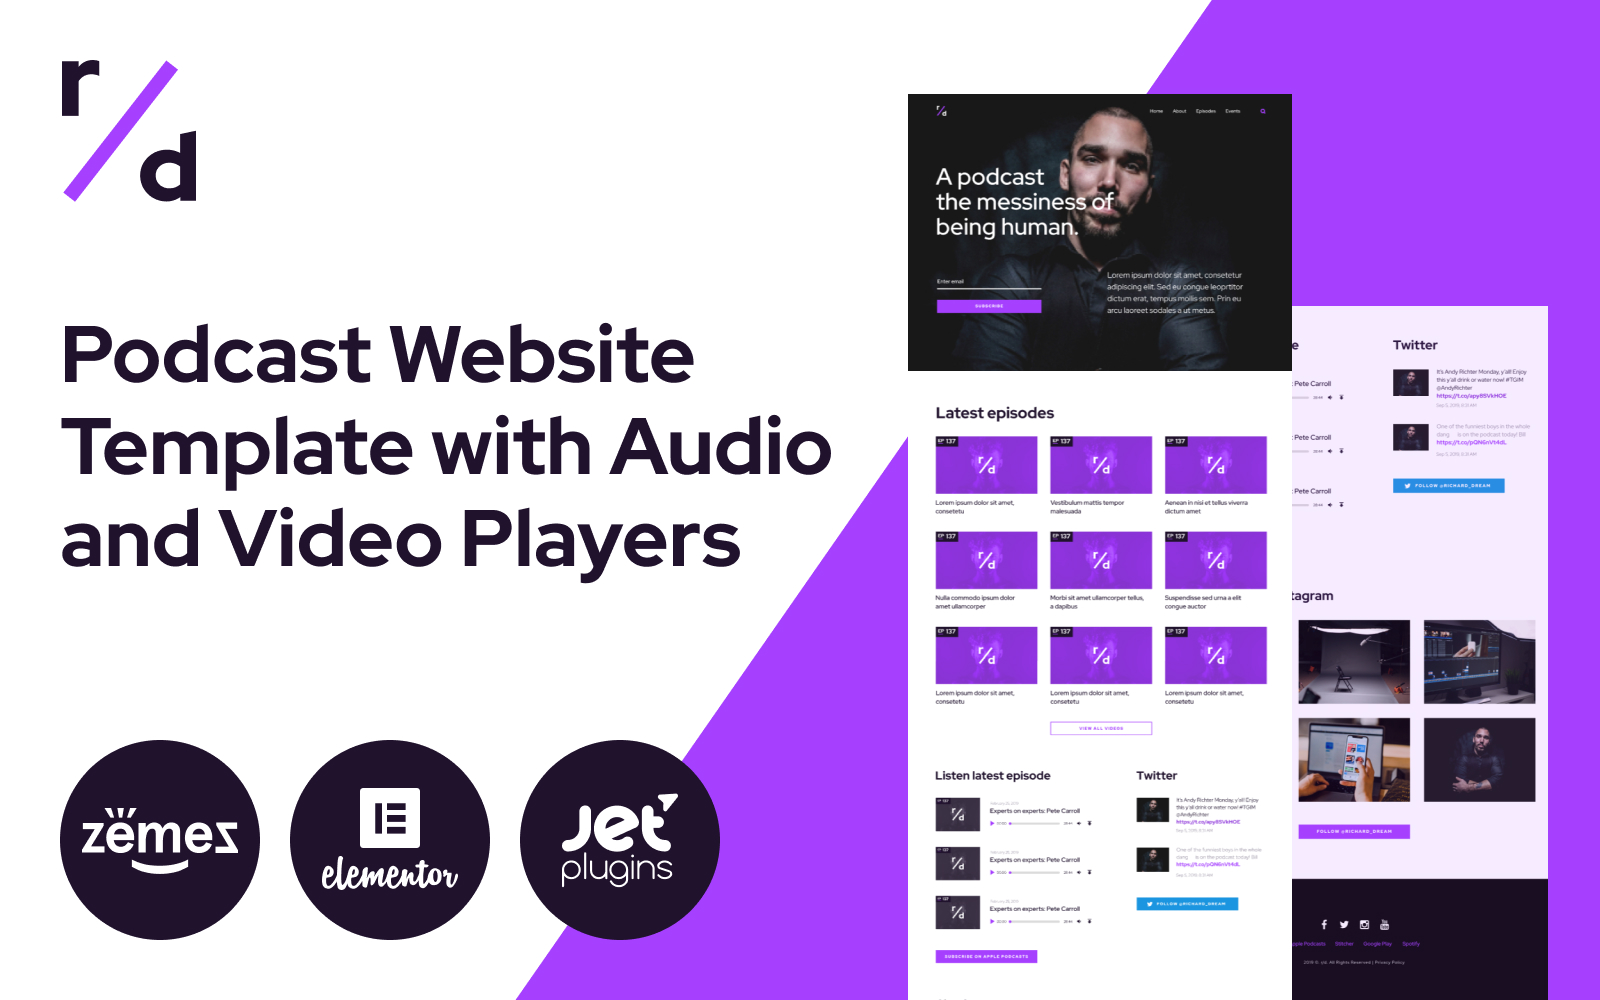 Richard Dream - Podcast Website Template with Audio and Video Players Tema WordPress №86500